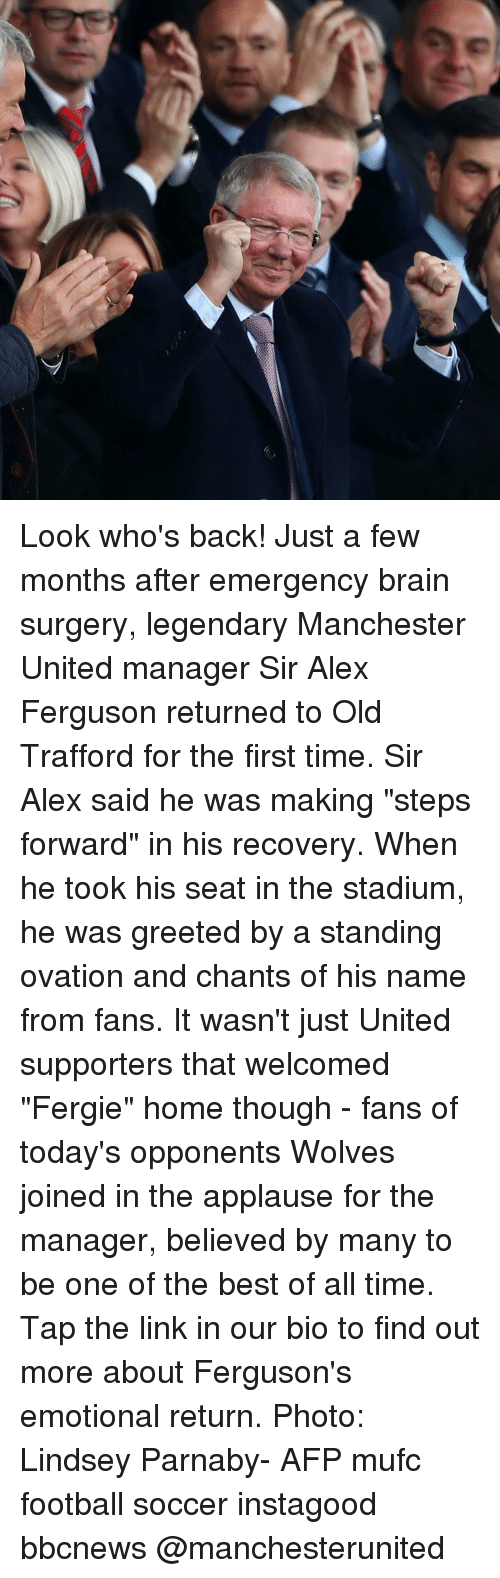 "Football, Memes, and Soccer: Look who's back! Just a few months after emergency brain surgery, legendary Manchester United manager Sir Alex Ferguson returned to Old Trafford for the first time. Sir Alex said he was making ""steps forward"" in his recovery. When he took his seat in the stadium, he was greeted by a standing ovation and chants of his name from fans. It wasn't just United supporters that welcomed ""Fergie"" home though - fans of today's opponents Wolves joined in the applause for the manager, believed by many to be one of the best of all time. Tap the link in our bio to find out more about Ferguson's emotional return. Photo: Lindsey Parnaby- AFP mufc football soccer instagood bbcnews @manchesterunited"